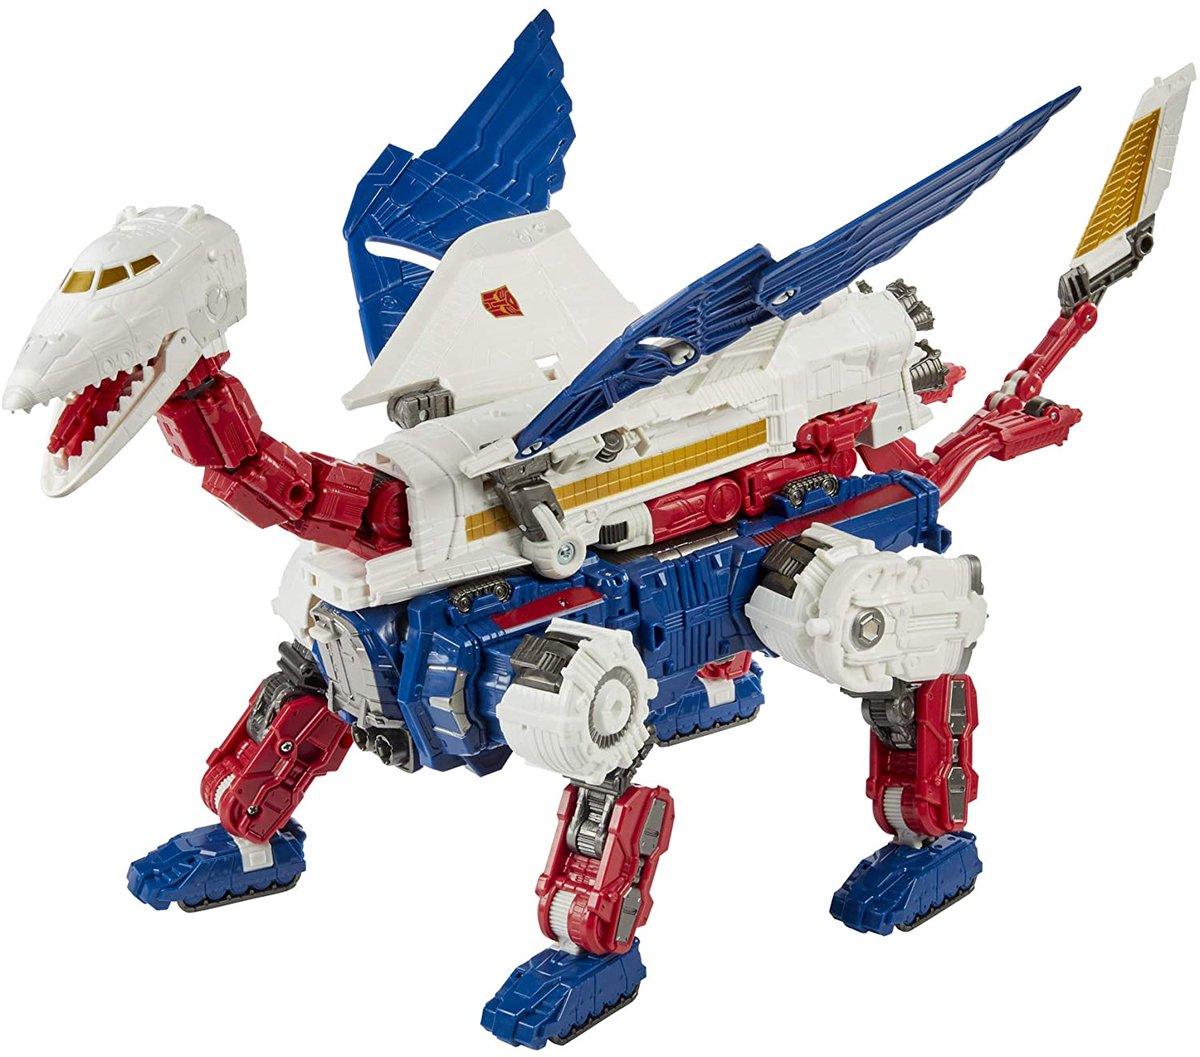 Hasbro Transformers: War For Cybertron Earthrise – Skylynx Figure In-Stock On Amazon